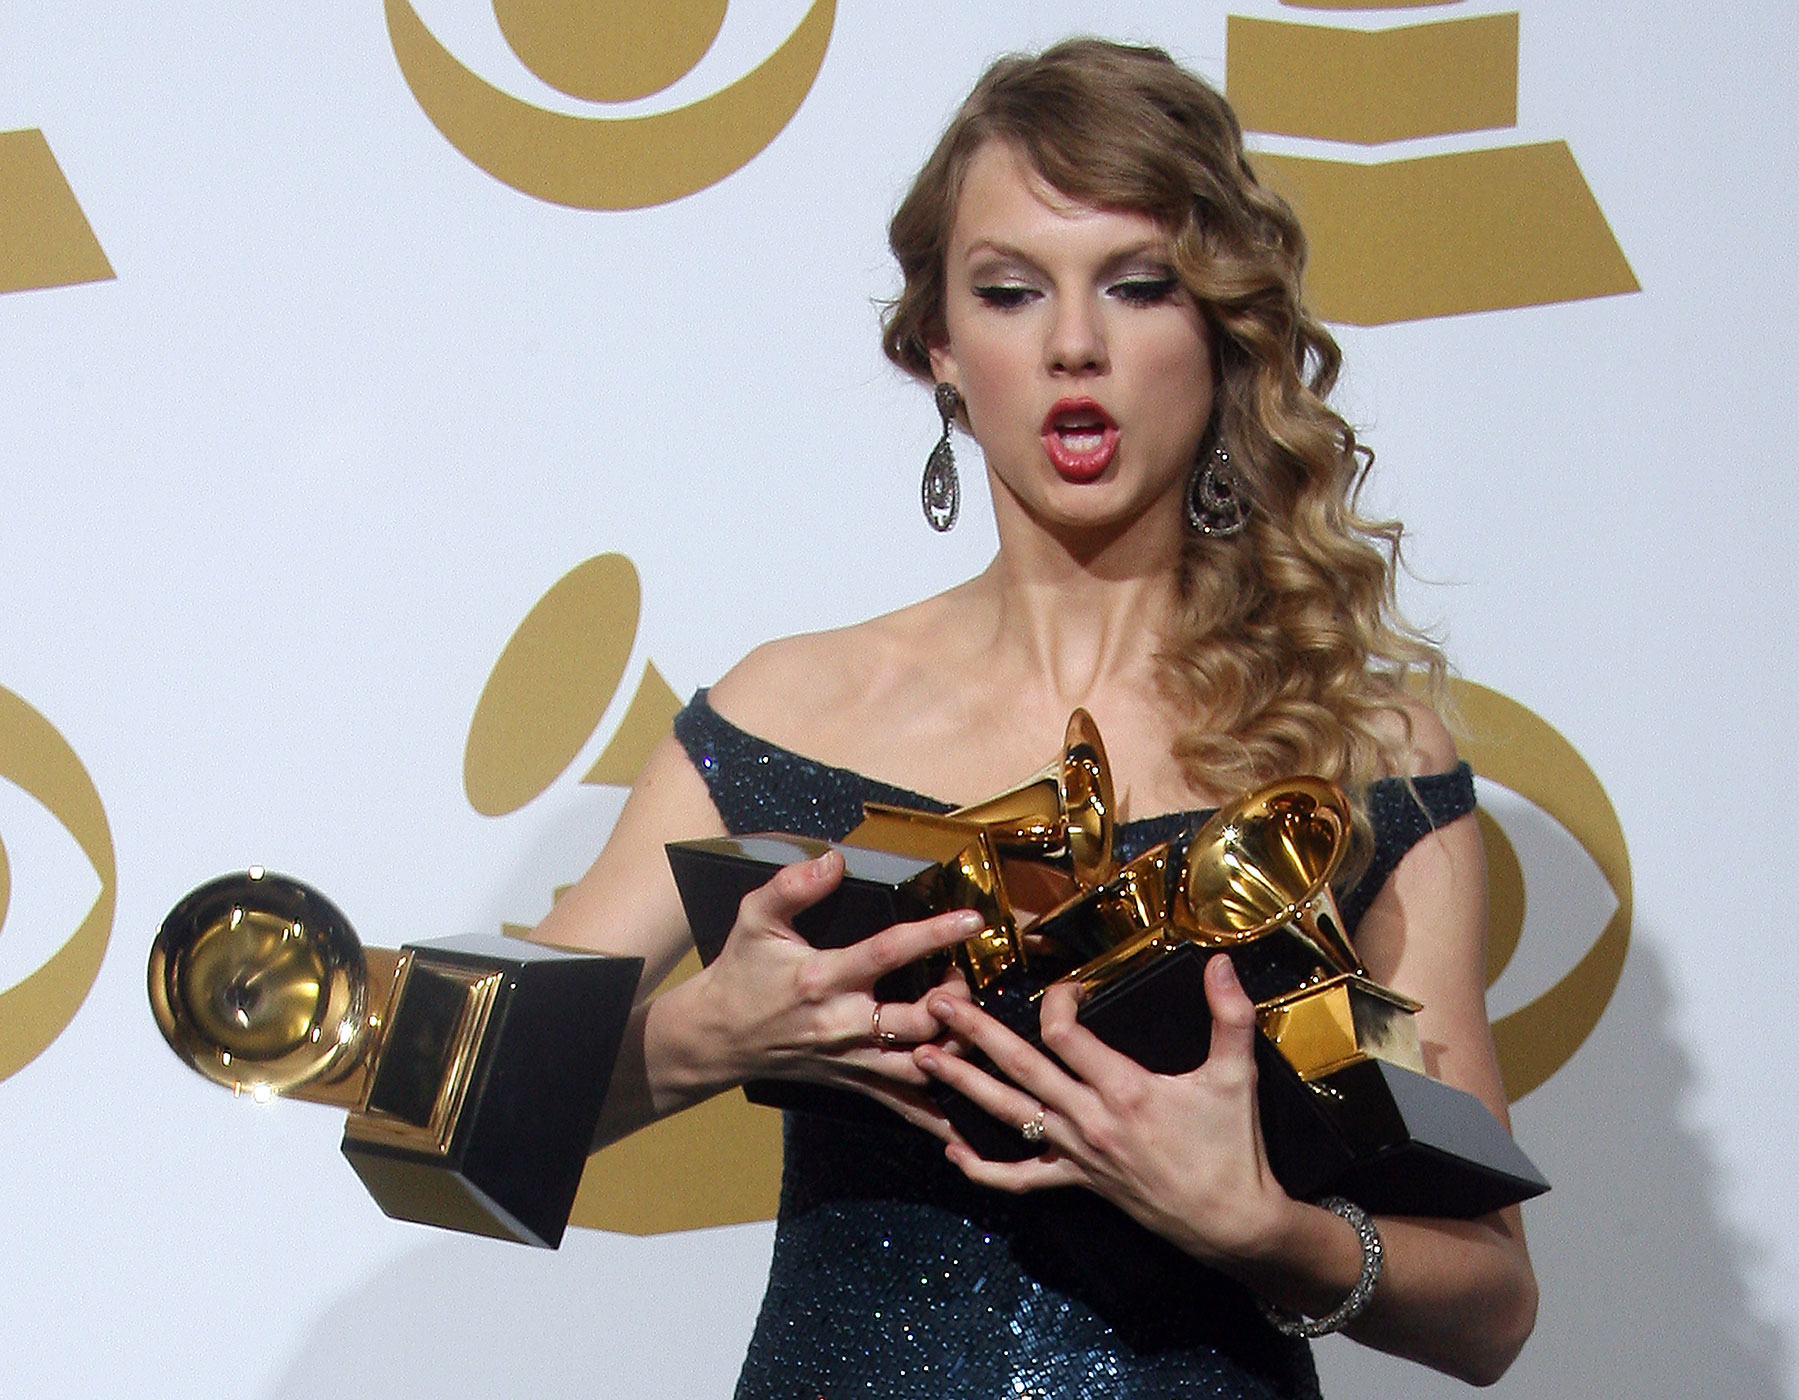 Taylor Swift drops one of her awards during the 52nd annual Grammy Awards in Los Angeles, California in 2010.